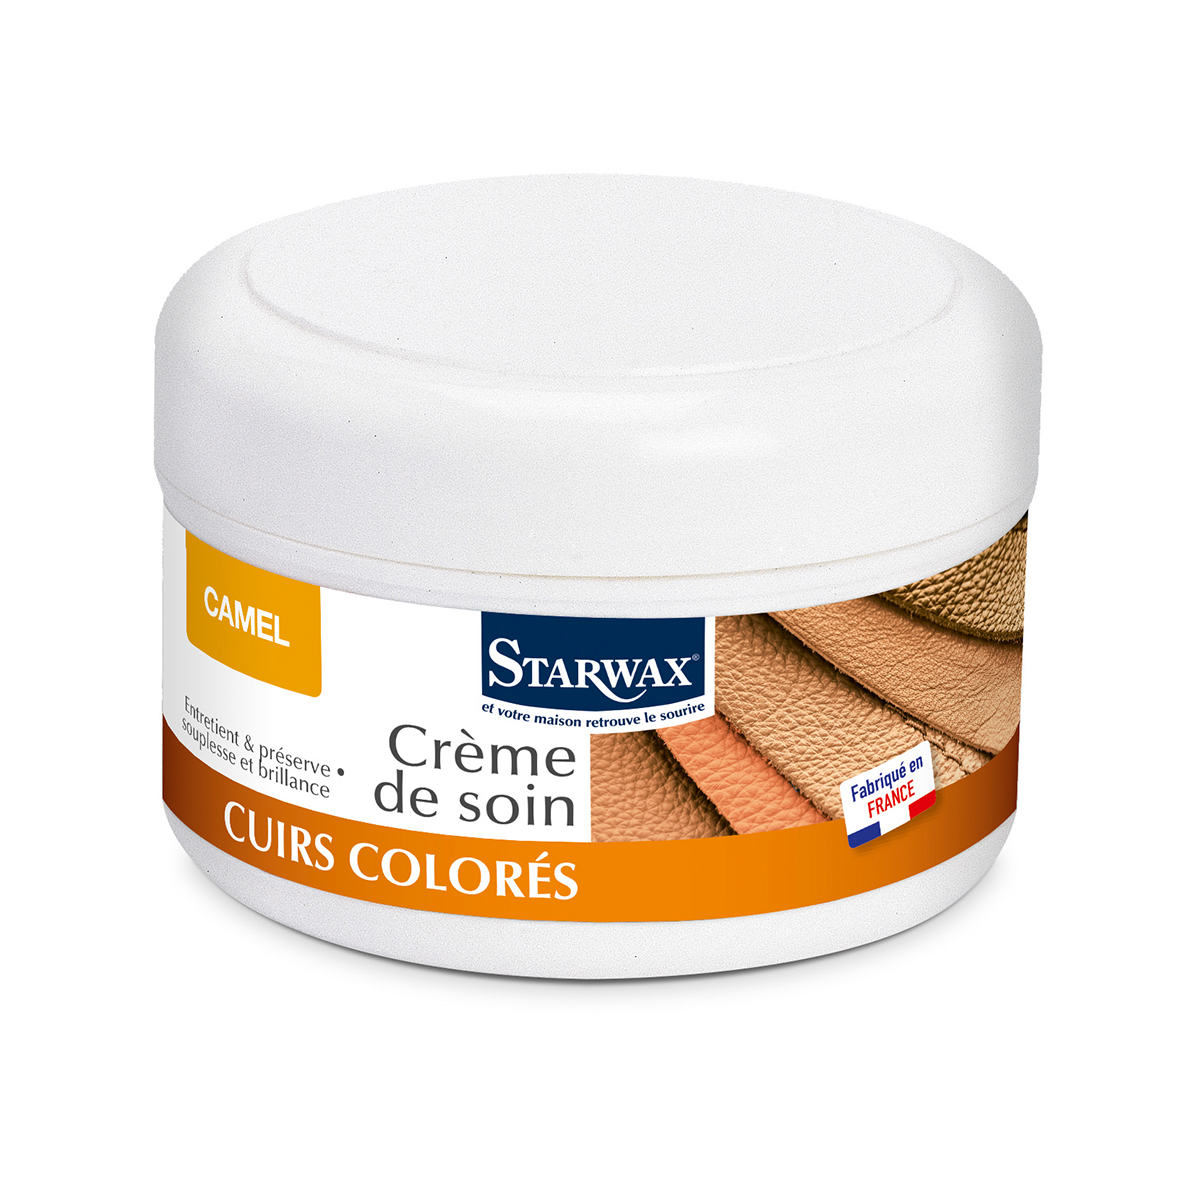 Coloured renovating cream for leather - Starwax